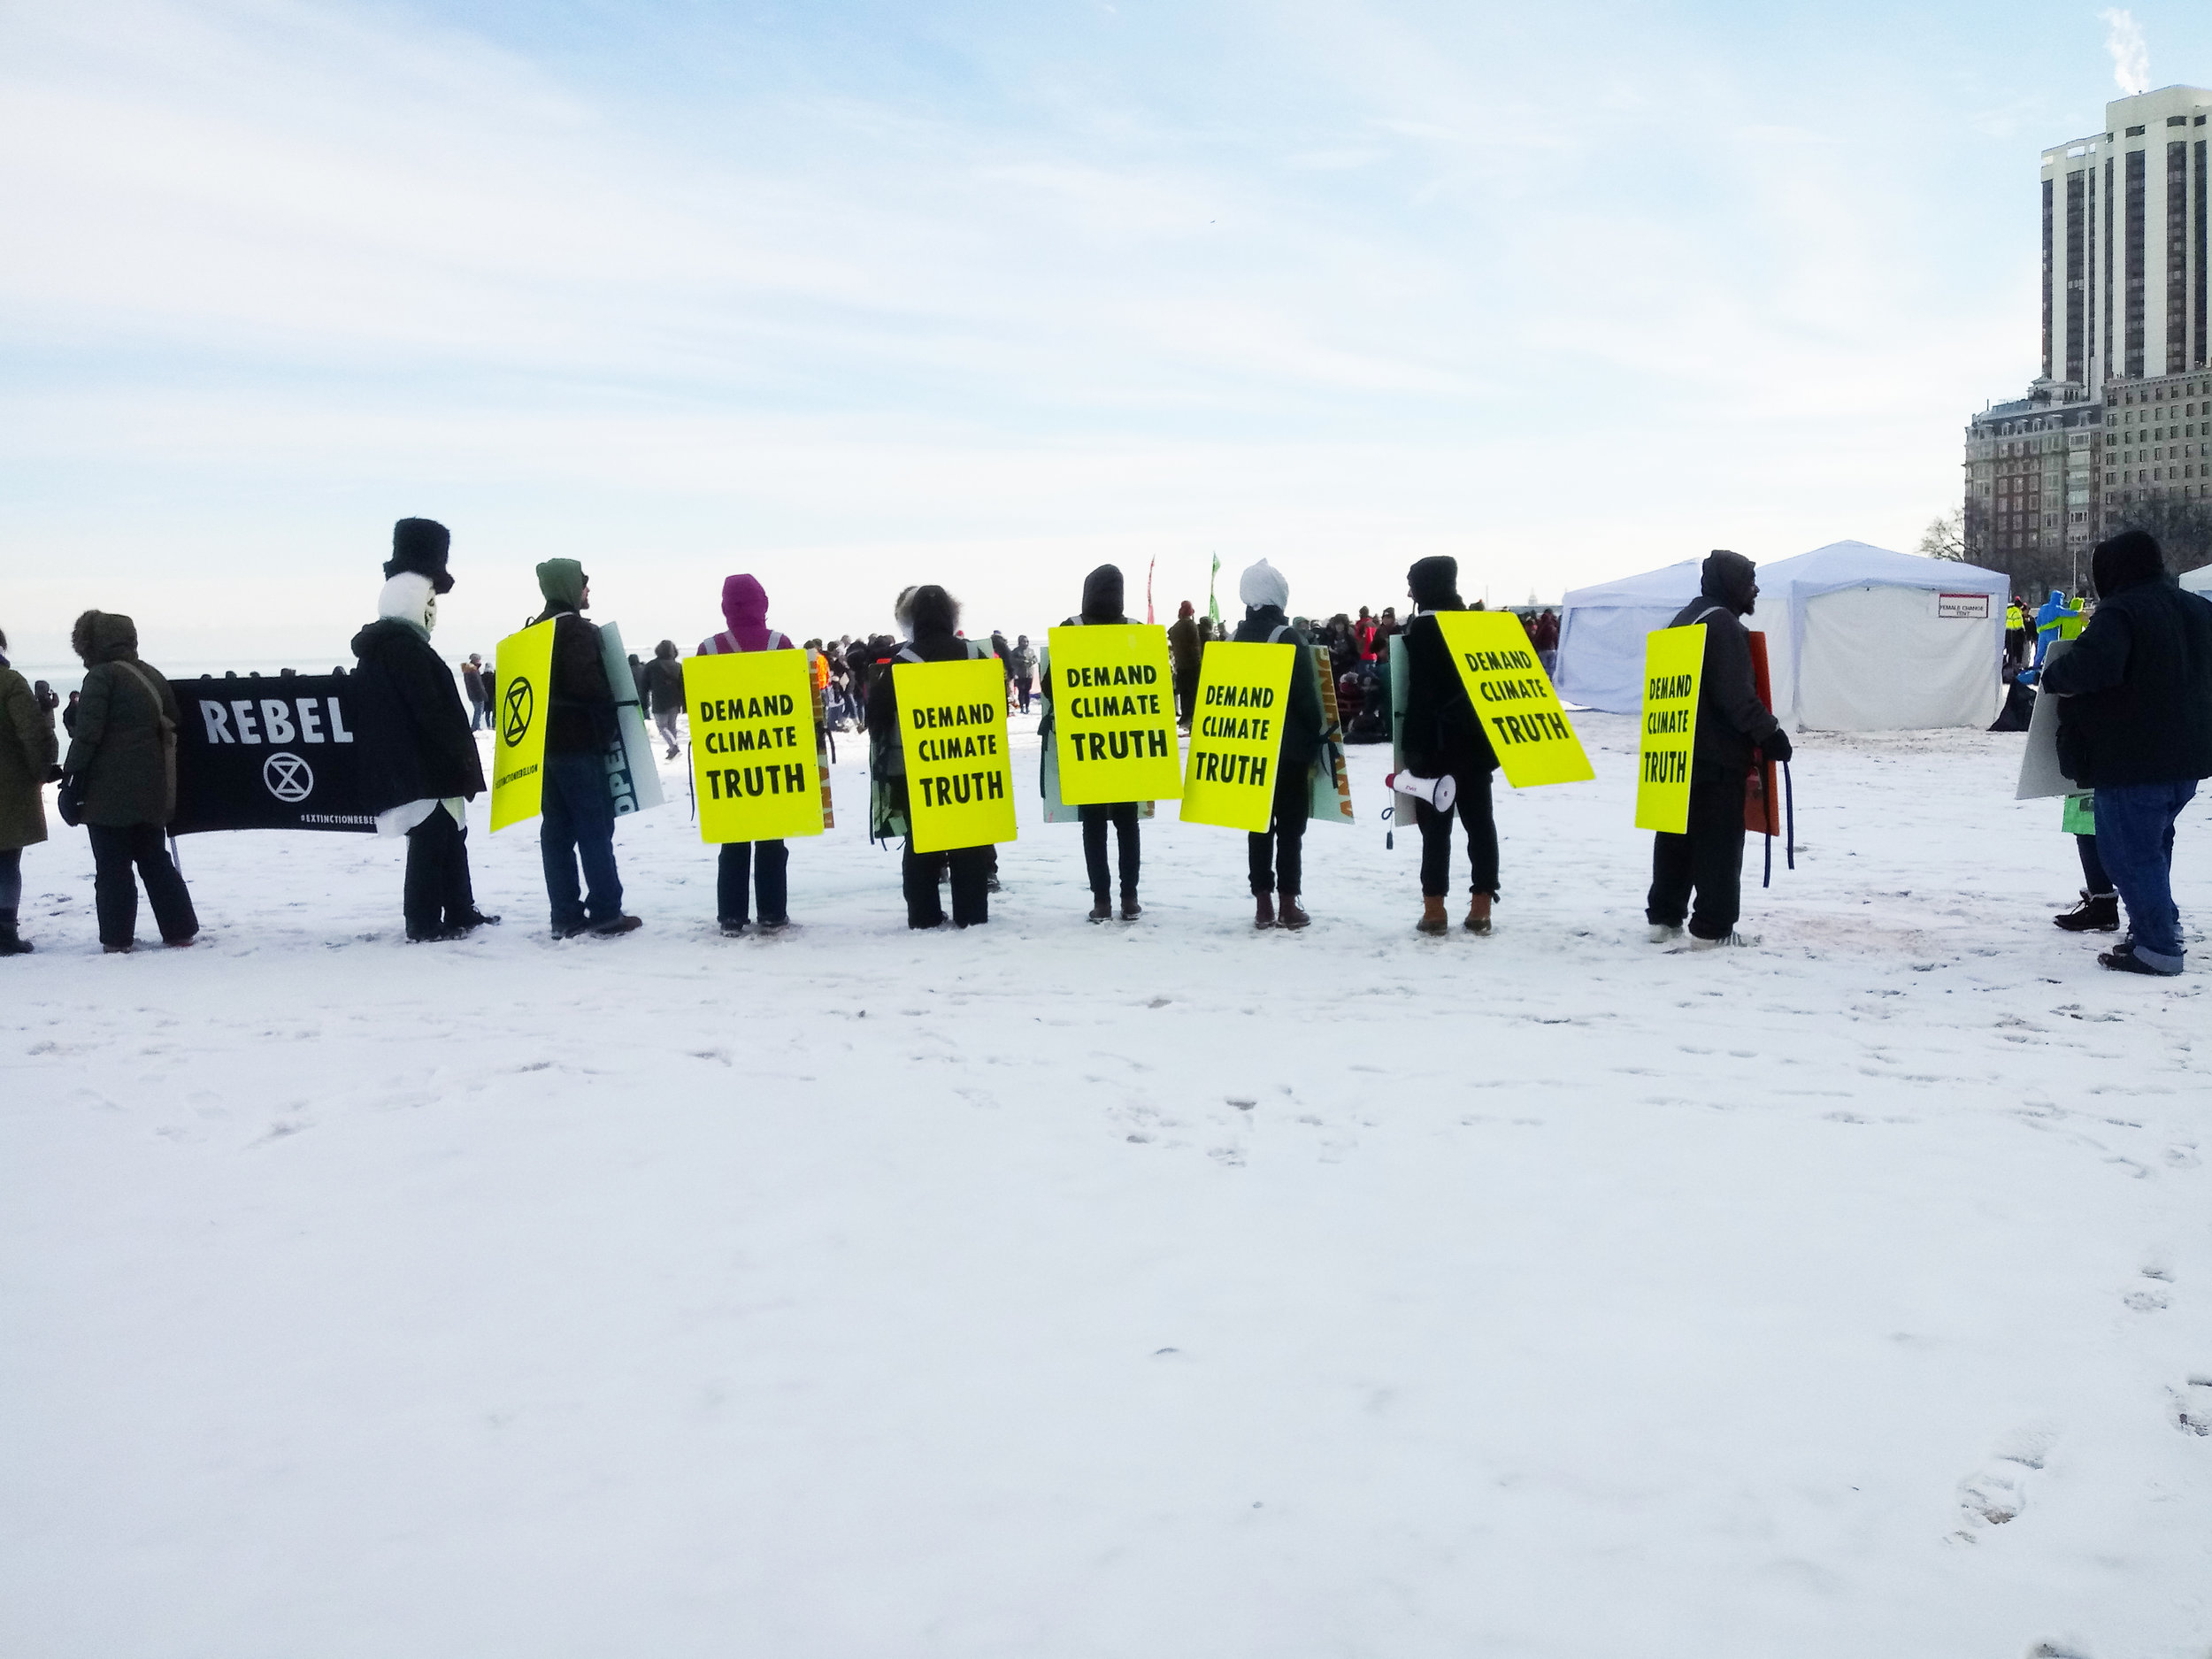 Extinction Rebellion Chicago's first day of protest on January 29, 2019